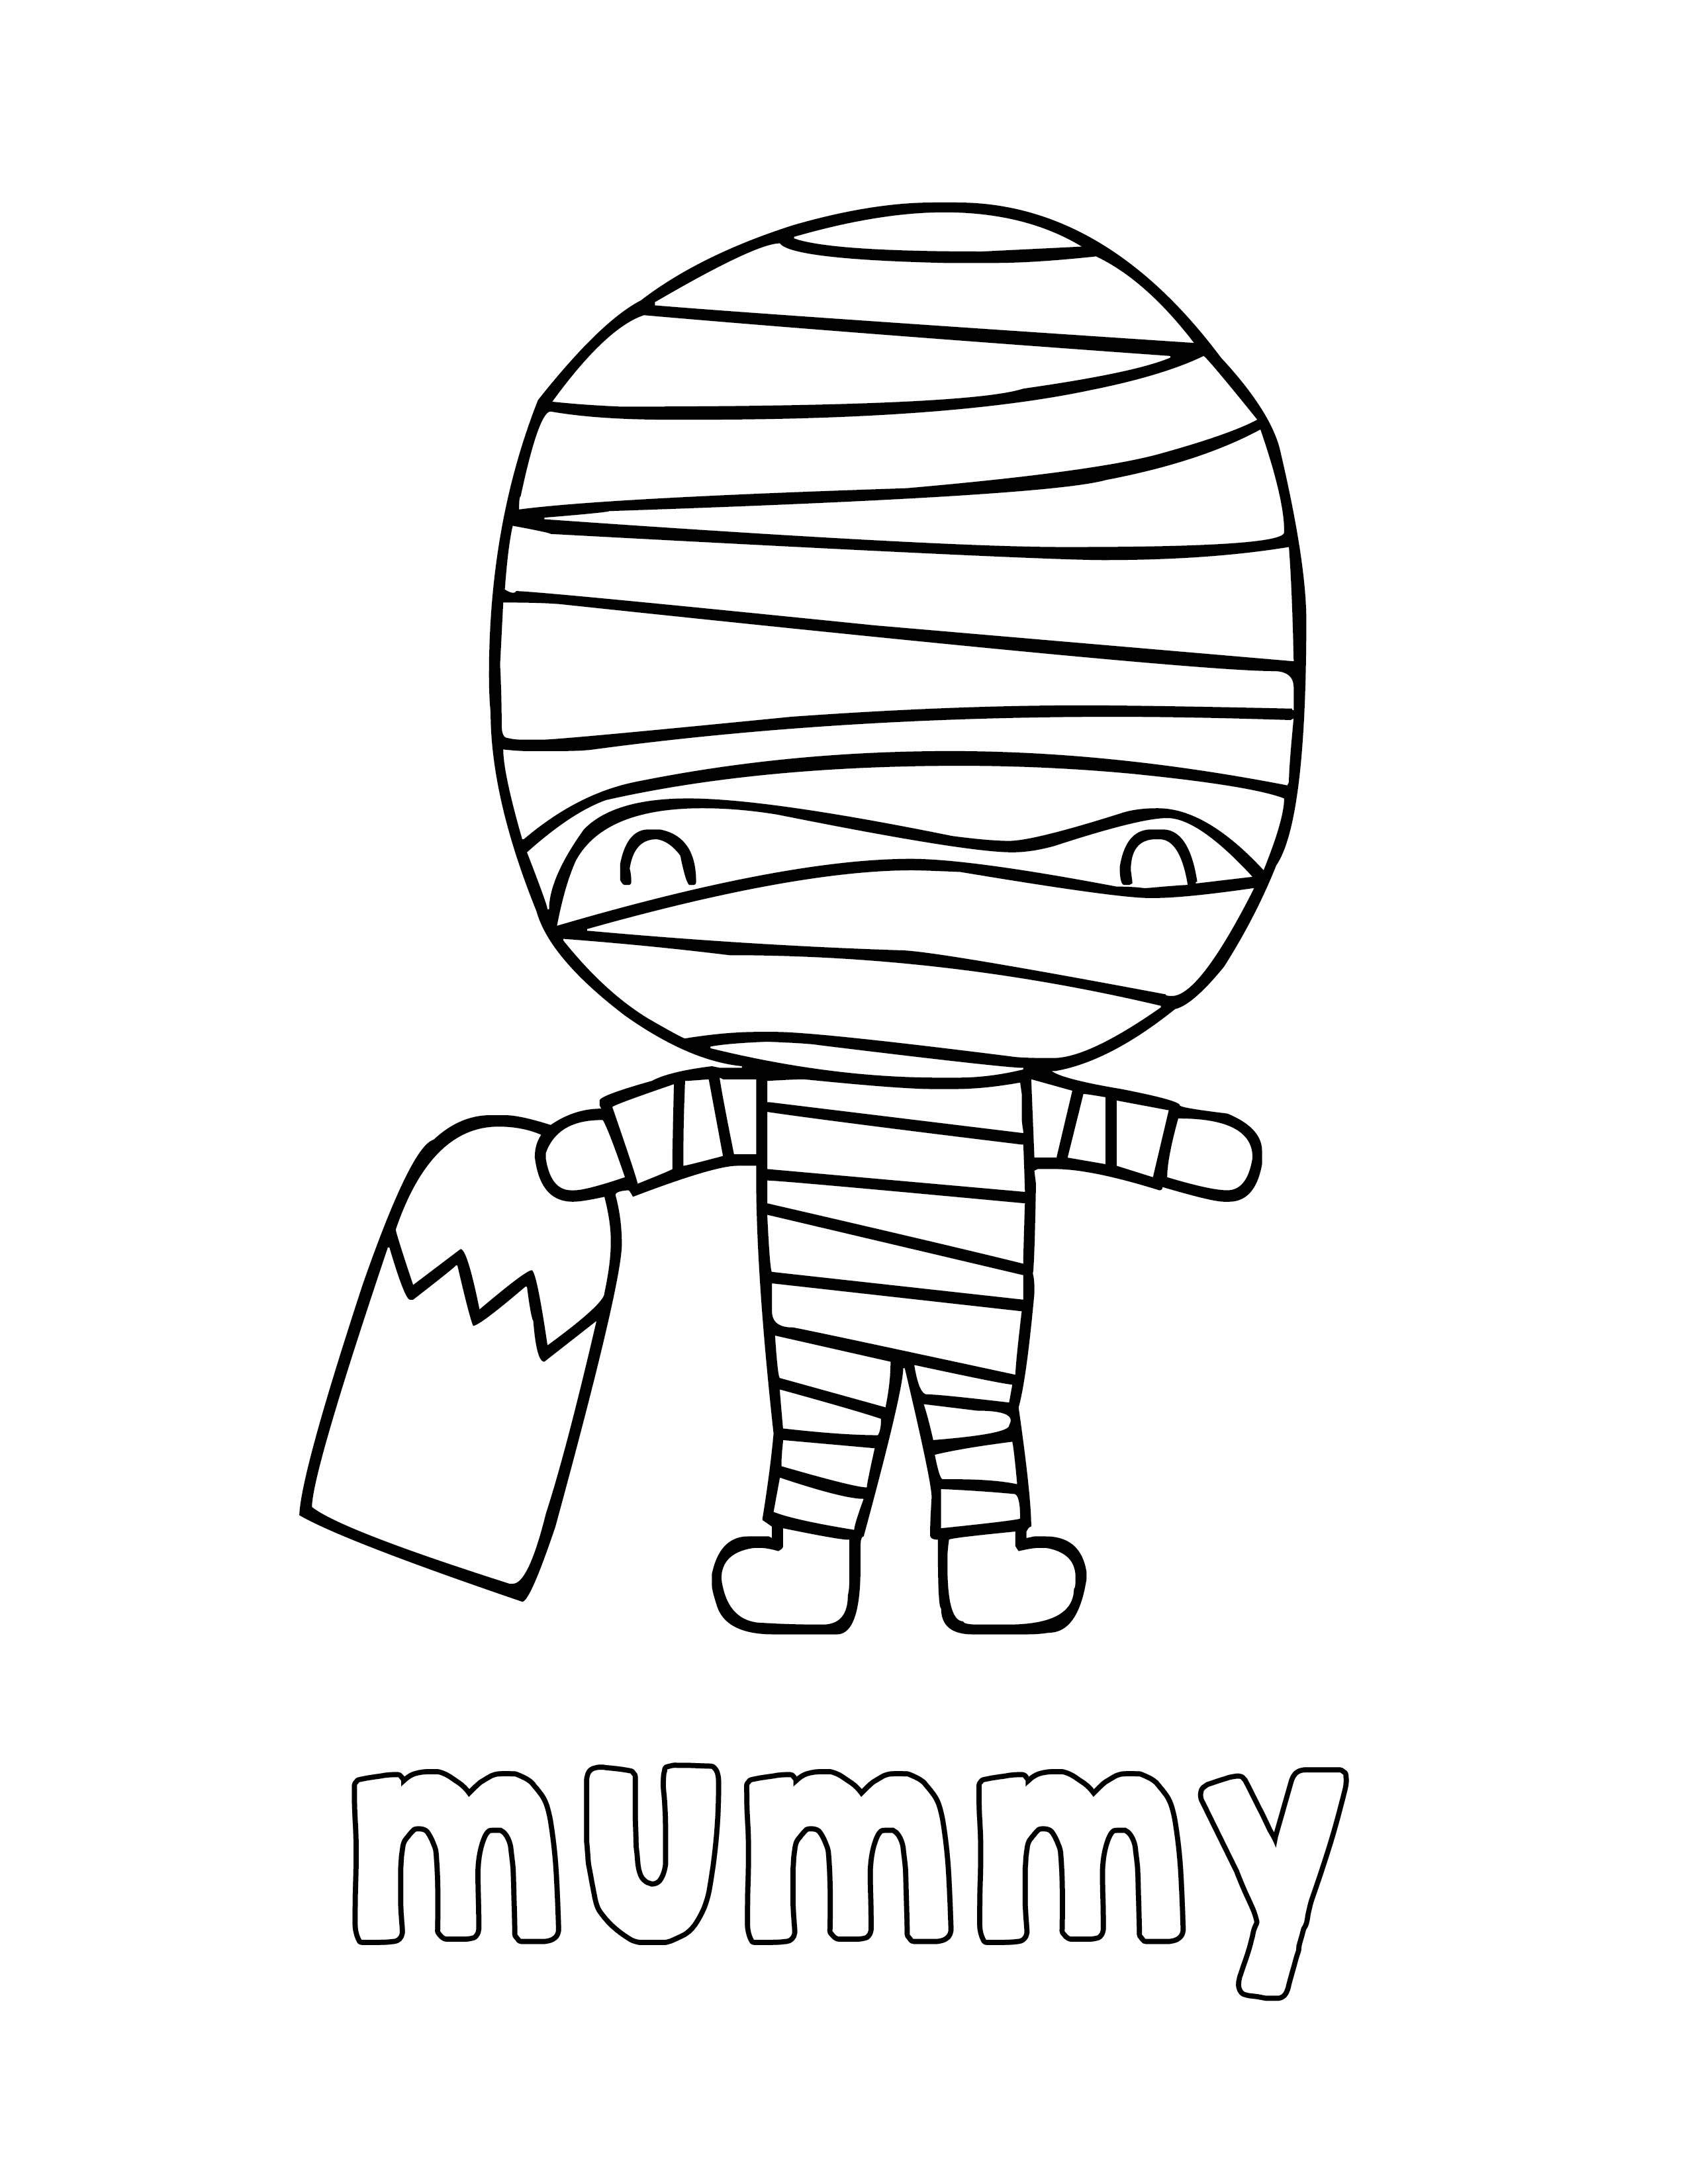 parents magazine halloween coloring pages - photo#25